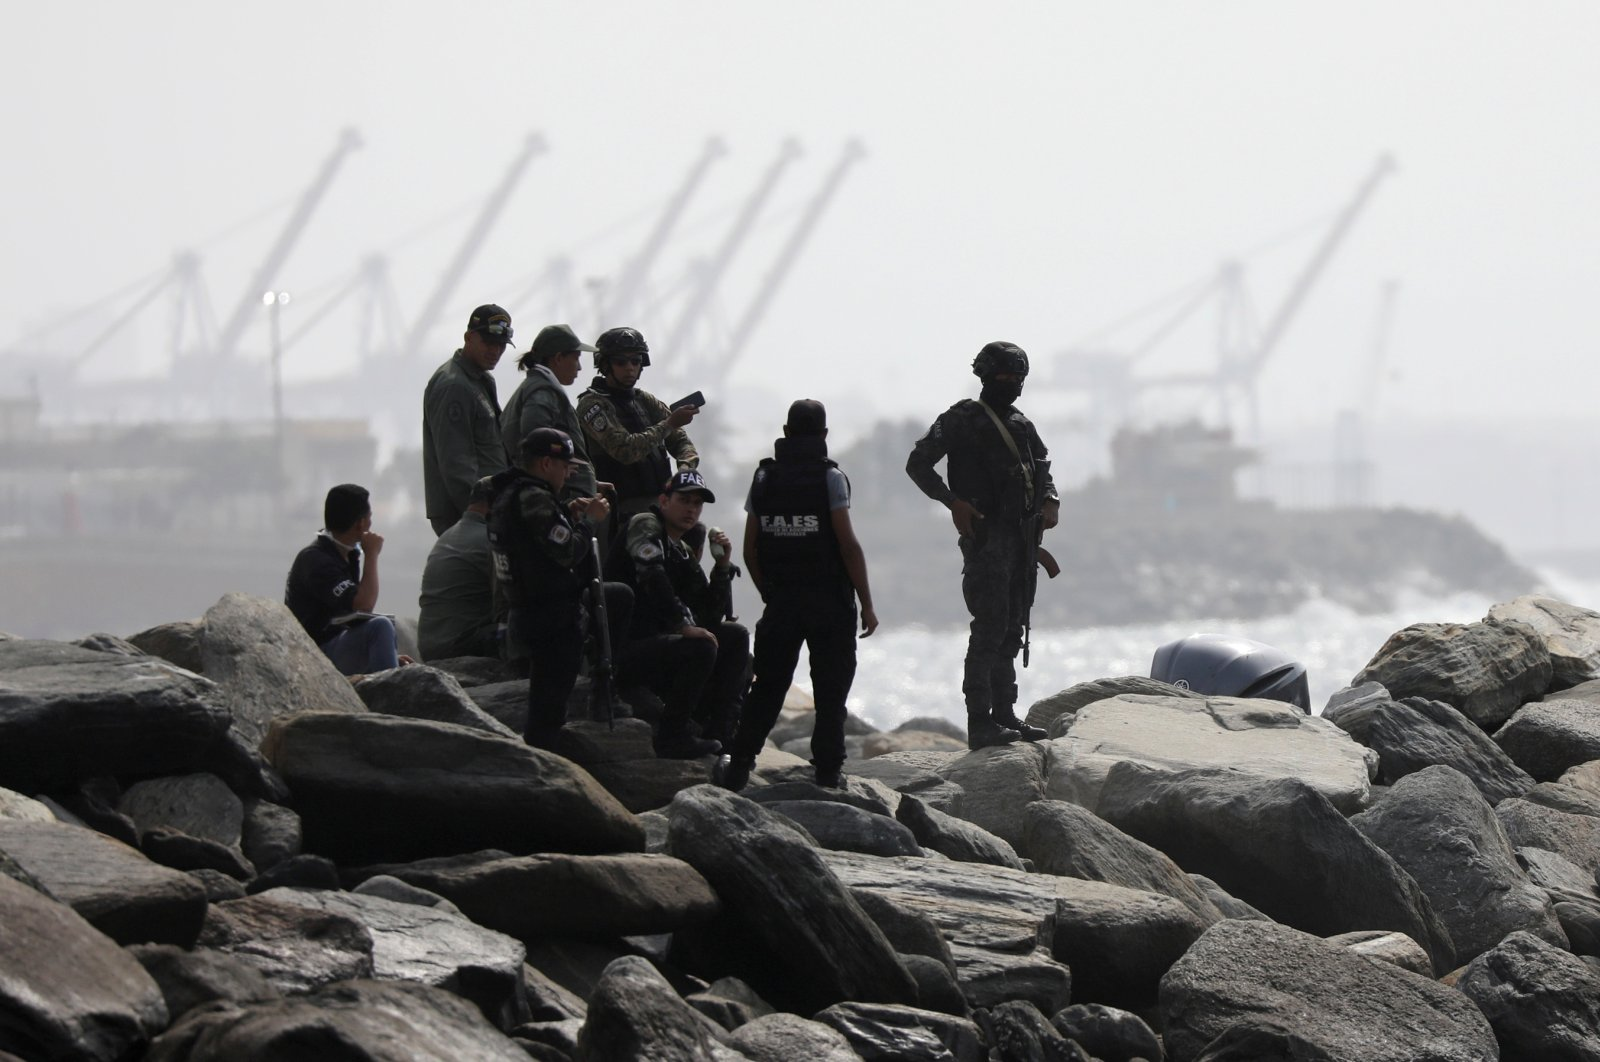 """Members of a Venezuelan special forces unit seen at a shore, after the government announced a failed """"mercenary"""" incursion, Macuto, May 3, 2020. (REUTERS Photo)"""